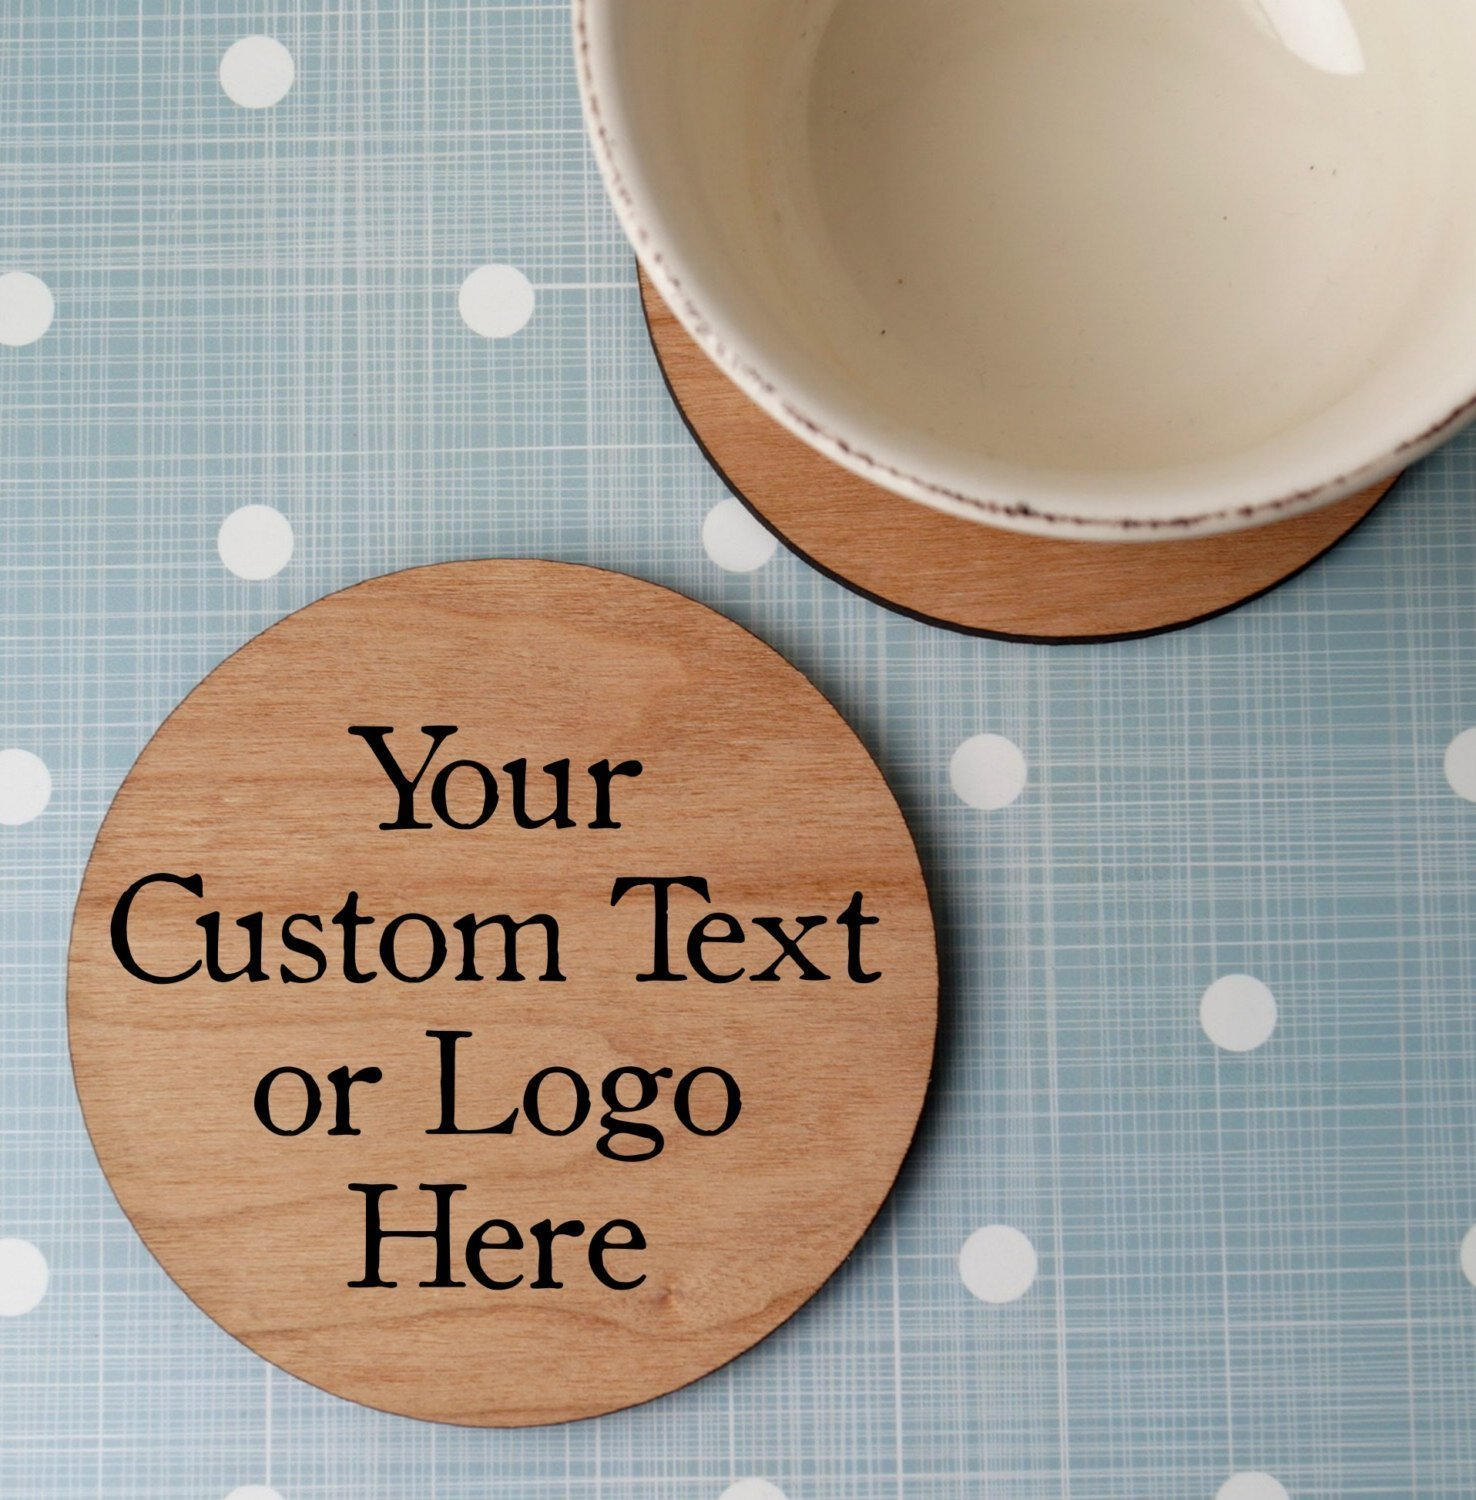 Custom wooden coasters, personalized wood coasters, laser engraved round wooden drink coasters, Christmas, wedding or anniversary gift Set of 4 pc